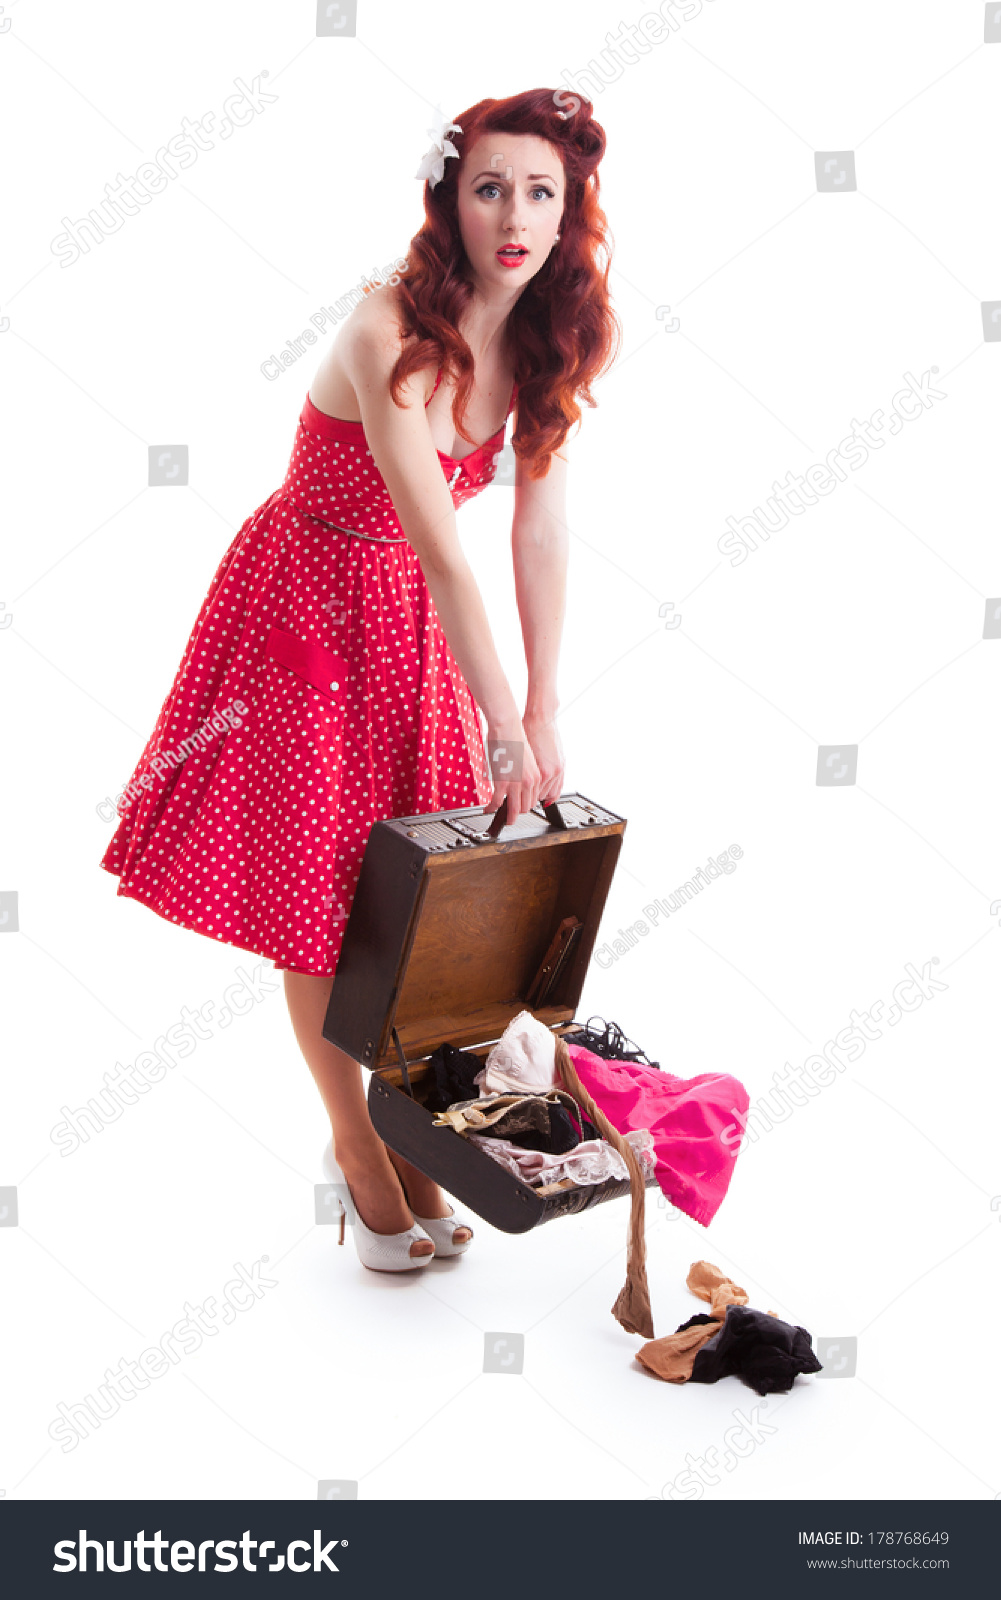 Beautiful retro pin-up girl with red polka dot dress and suitcase with  clothes falling 1f9df48980f6